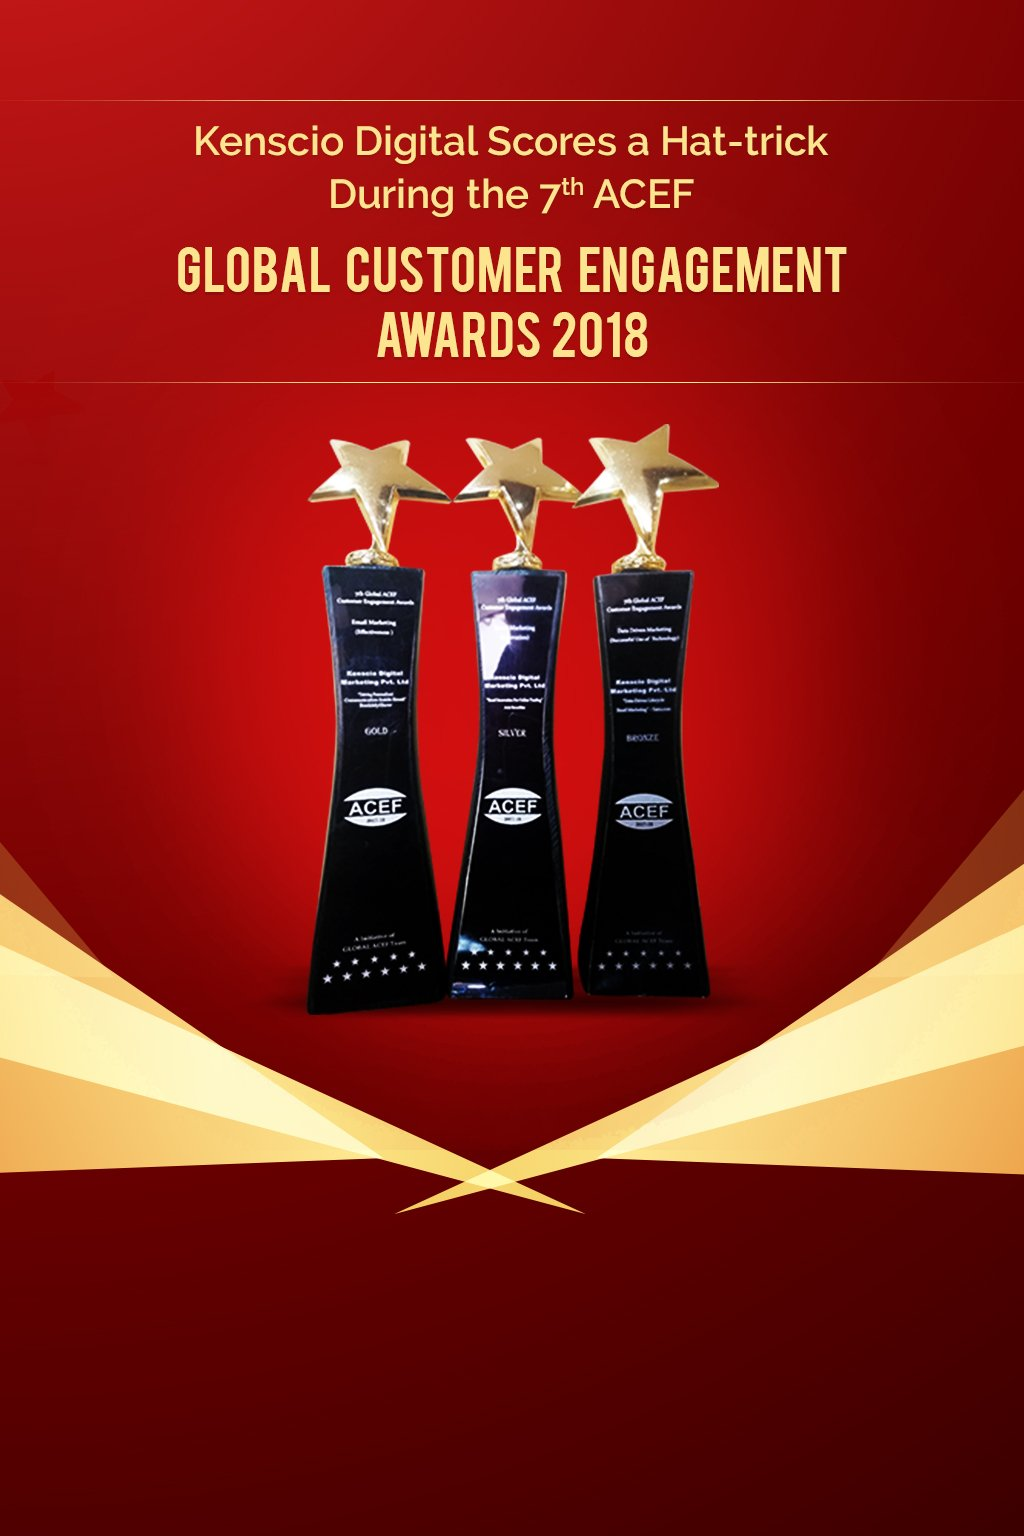 GLOBAL CUSTOMER ENGAGEMENT AWARDS 2018